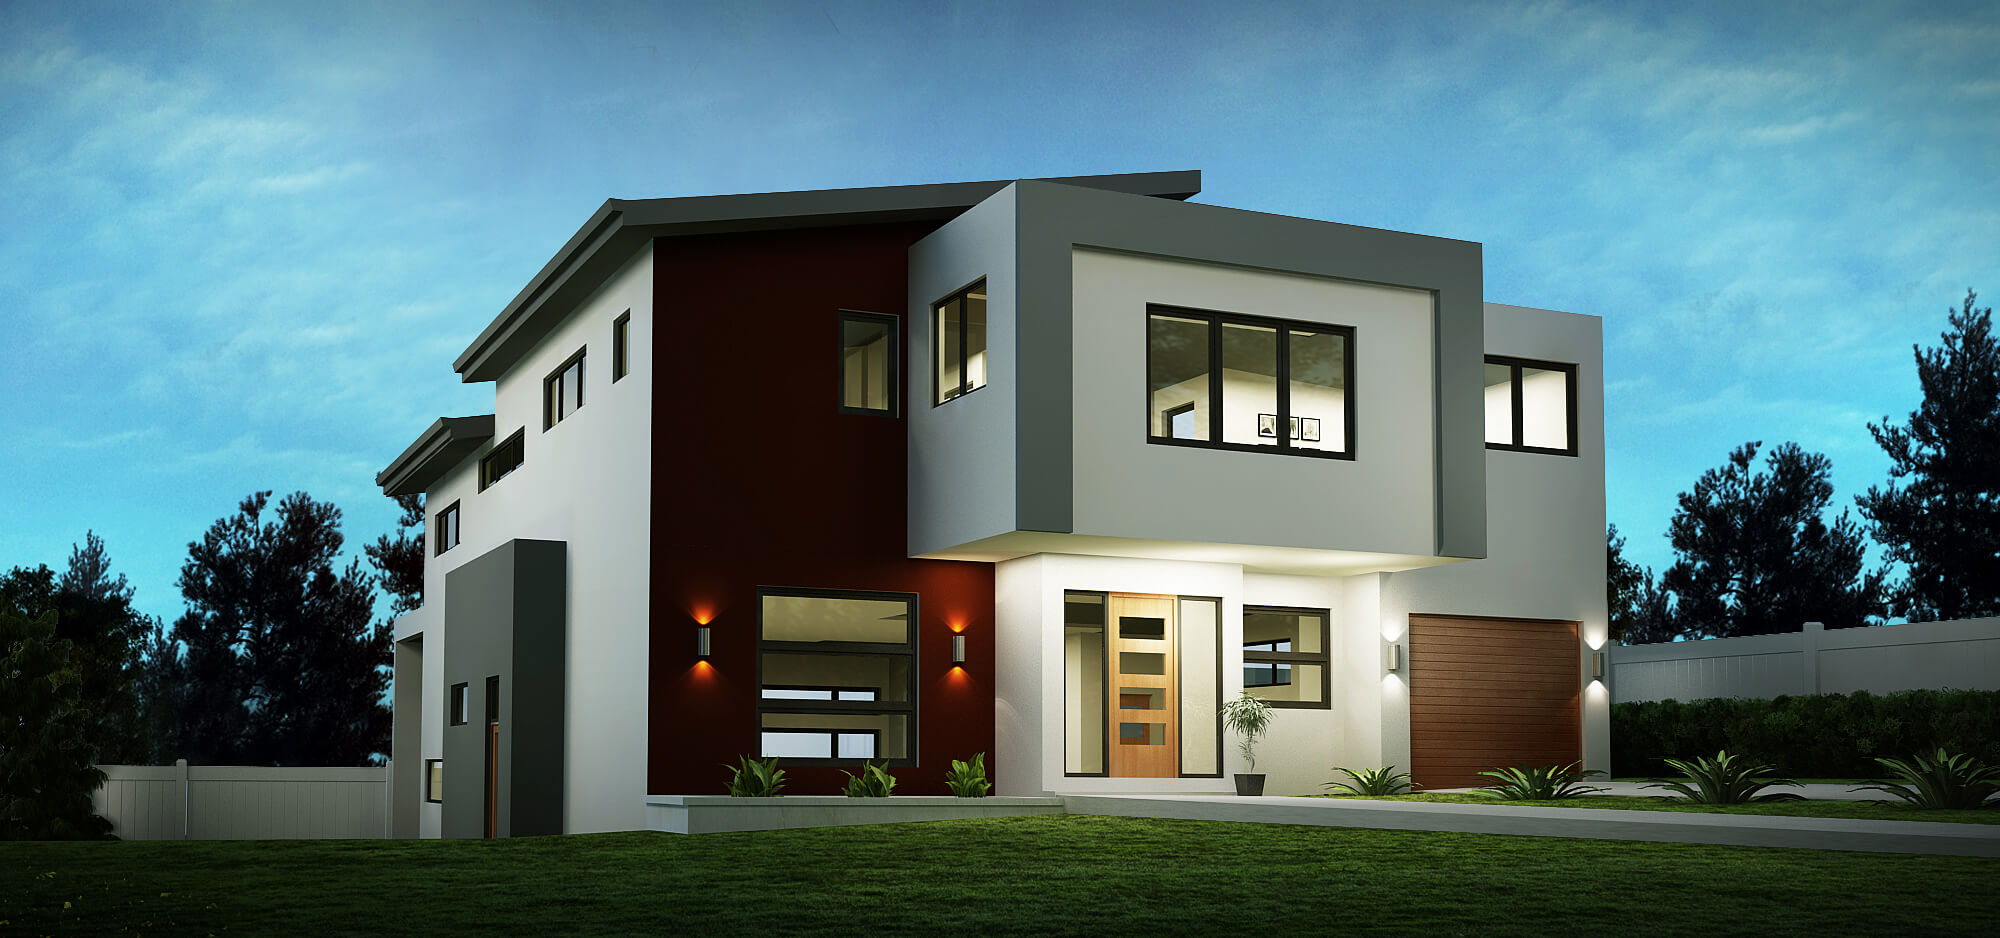 Sloping house block designs custom home designs for Custom home designers